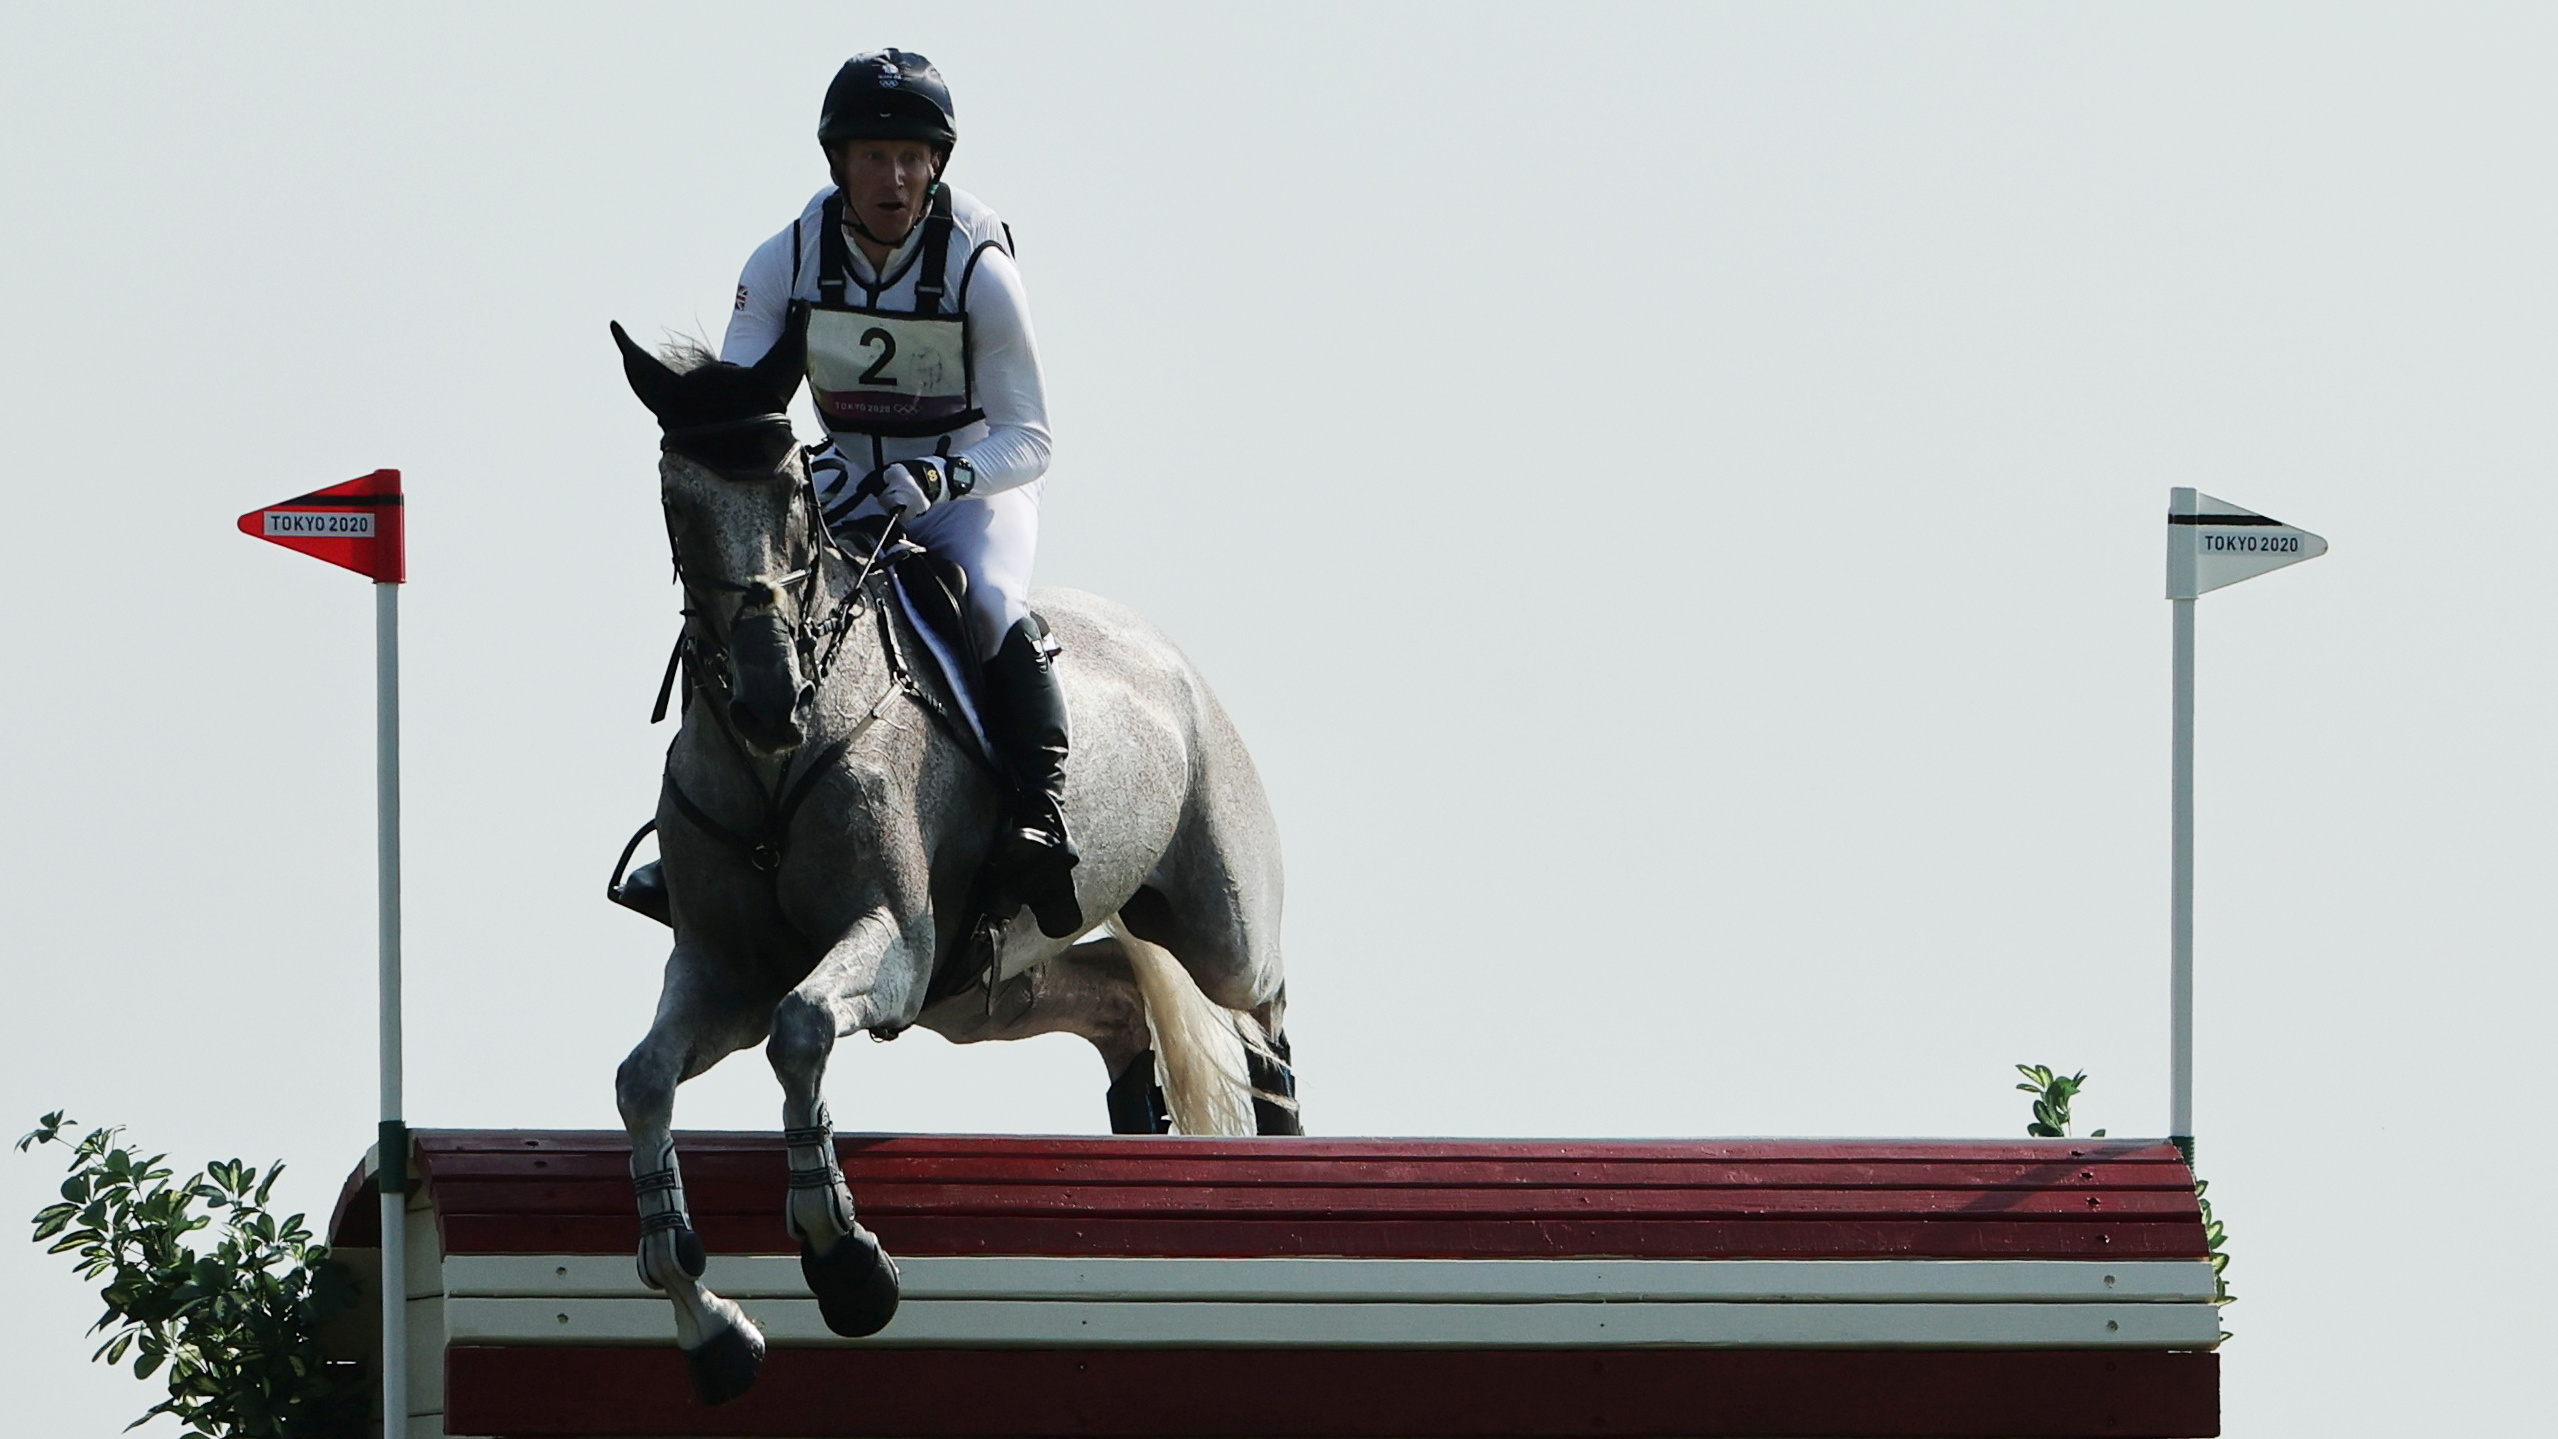 Tokyo 2020 Olympics - Equestrian - Eventing - Cross Country Team - Final - Sea Forest XC Course - Tokyo, Japan - August 1, 2021.  Oliver Townend of Britain on his horse Ballaghmor Class compete REUTERS/Alkis Konstantinidis